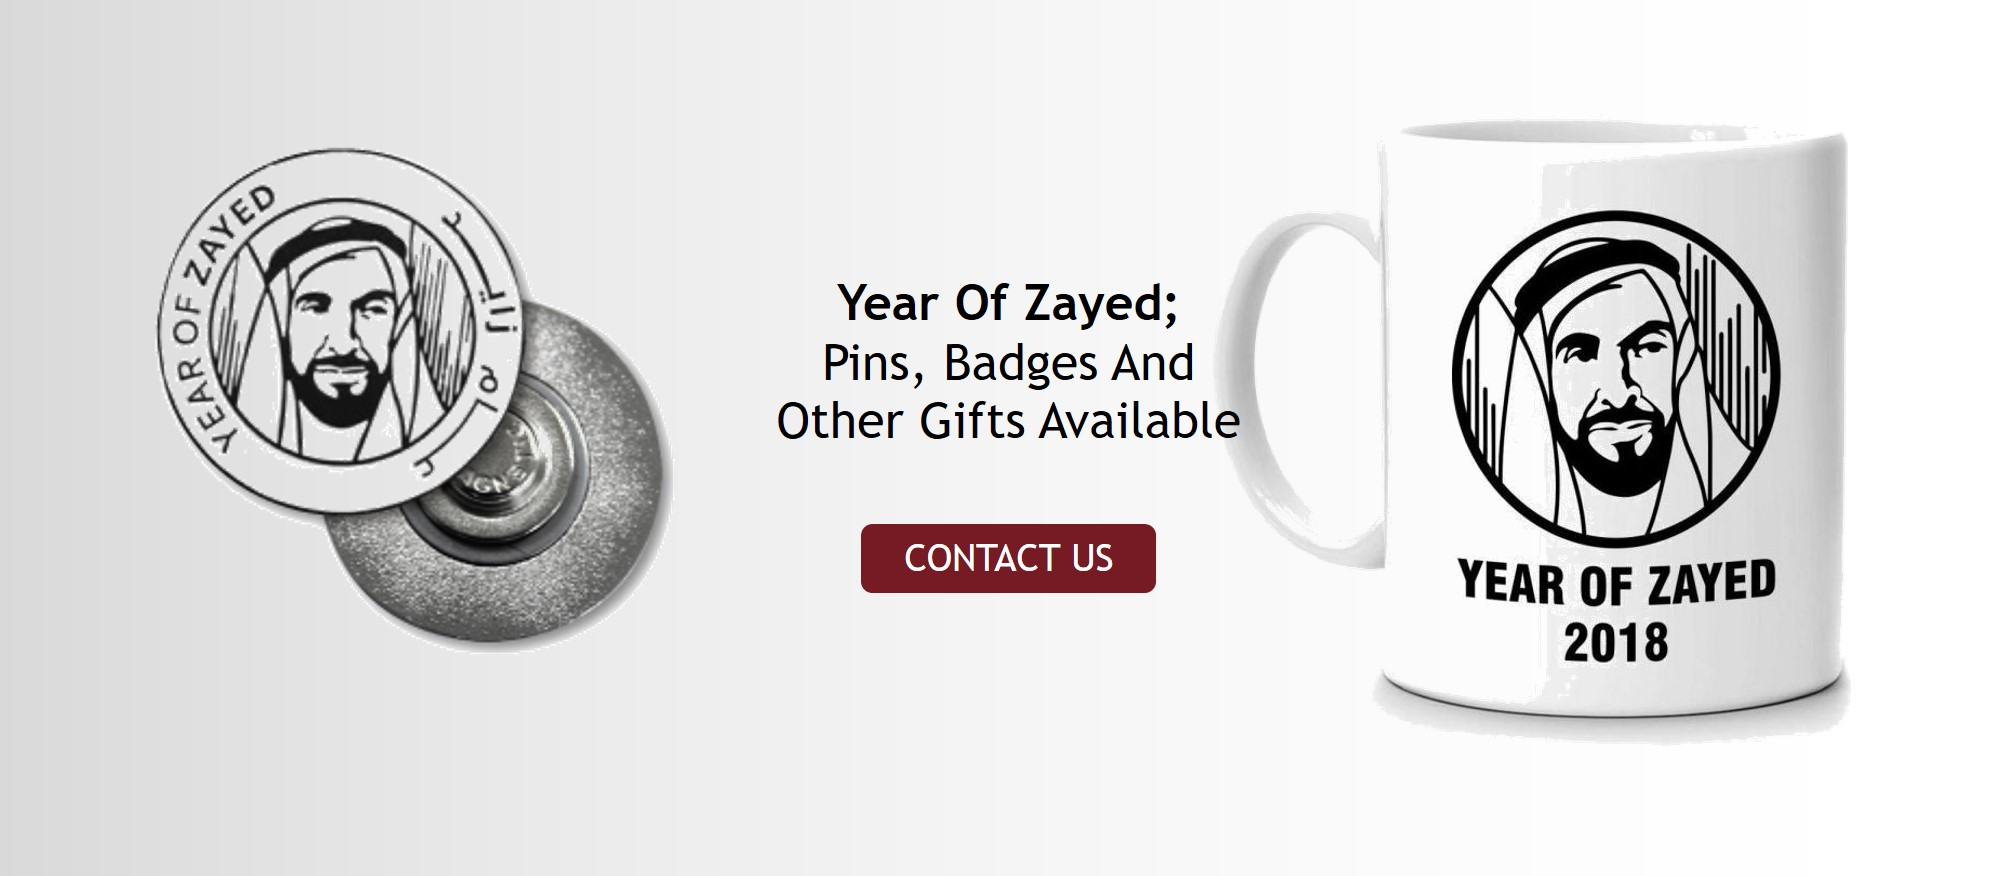 Year Of Zayed;Pins, Badges And Other Gifts Available